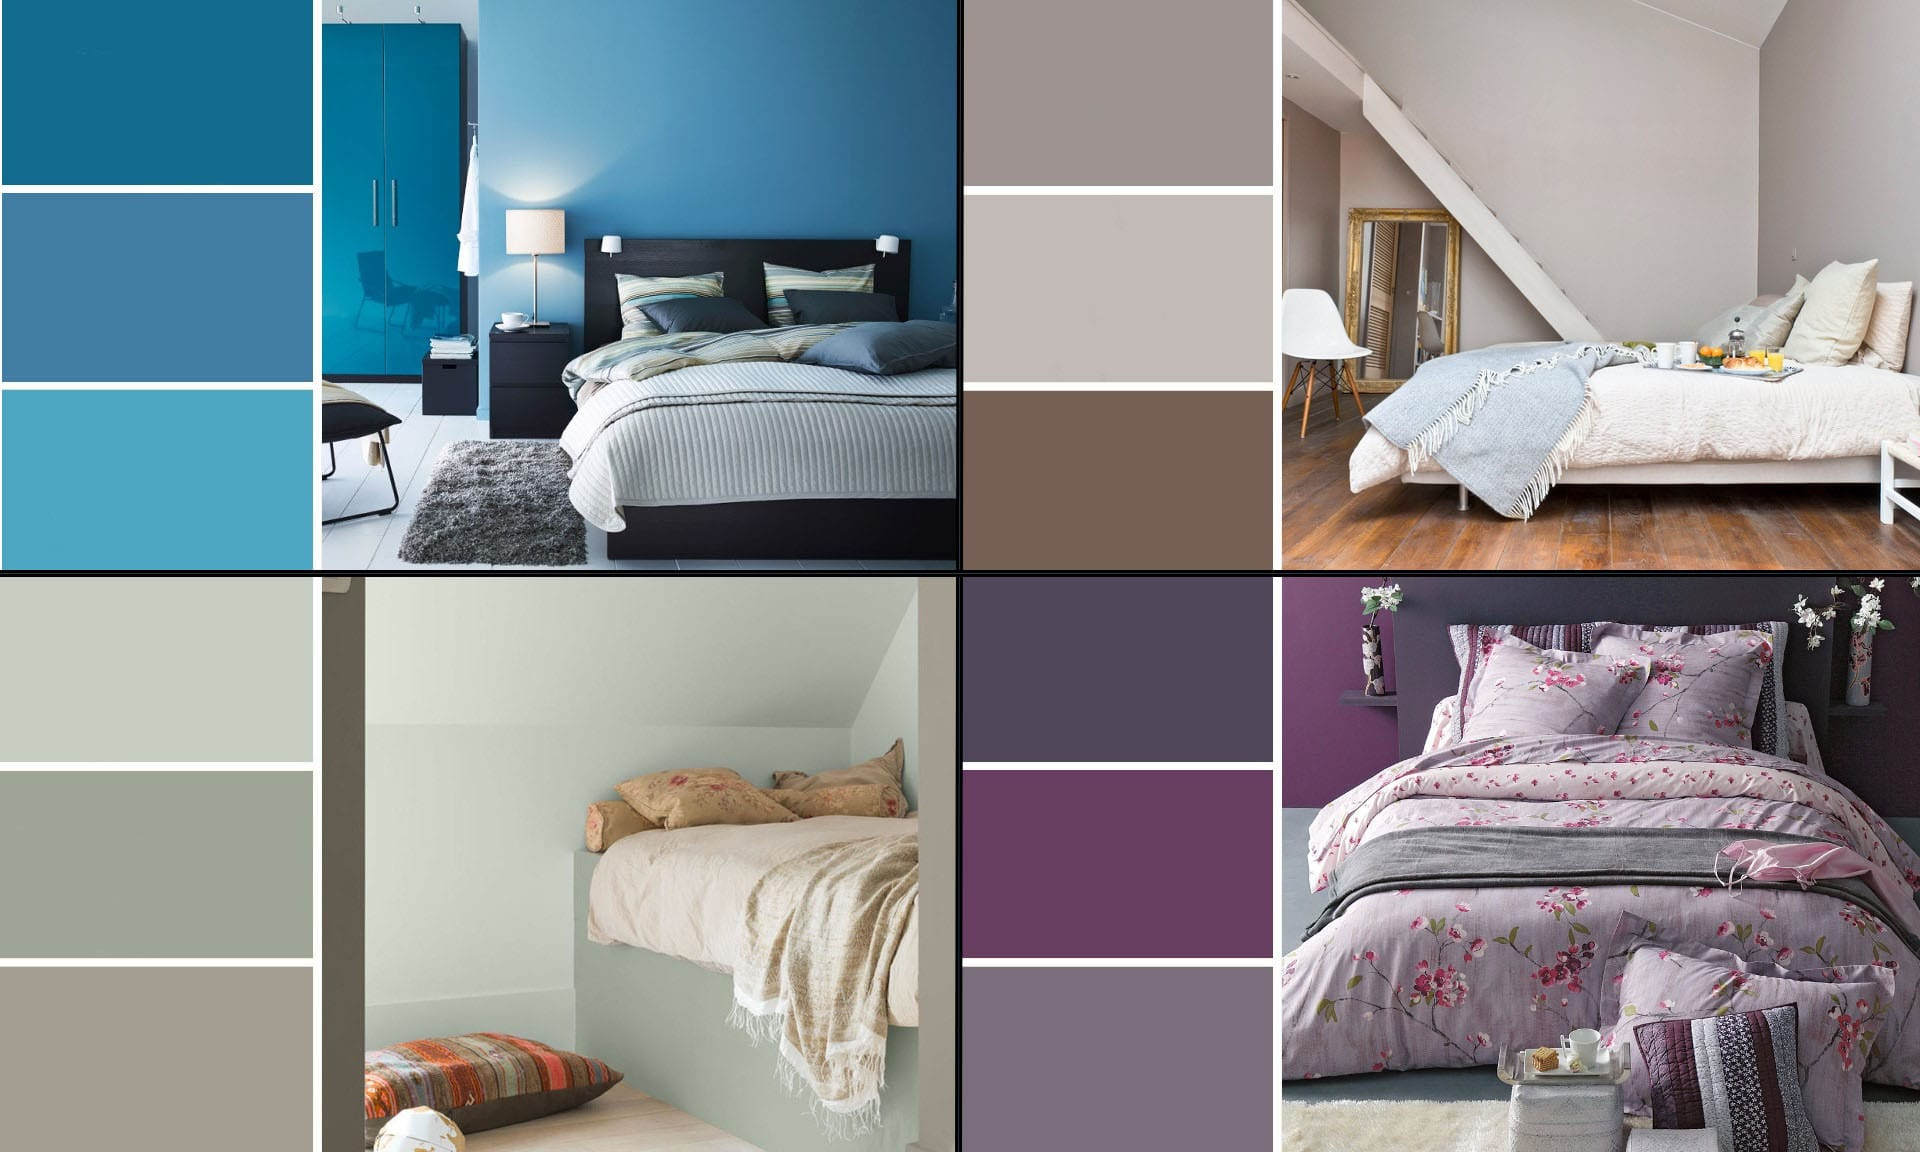 Grand Couleur Ideale Chambre Adulte